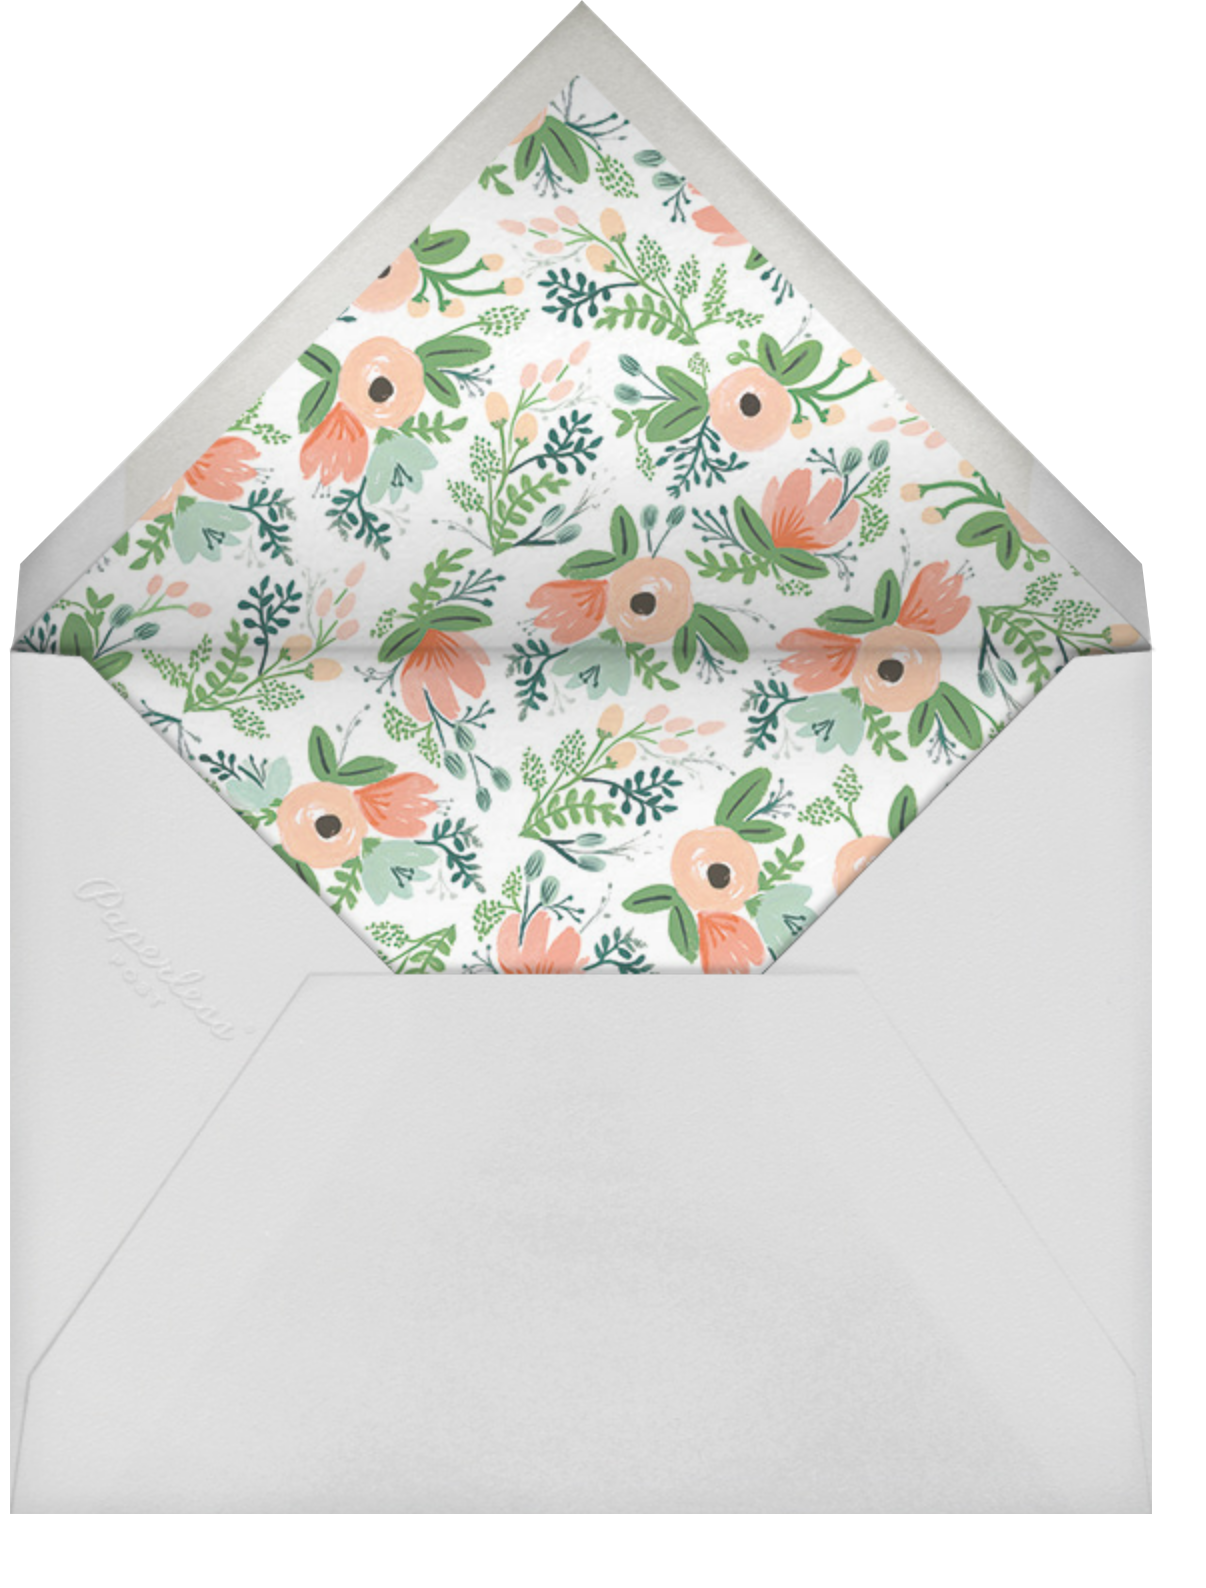 Floral Silhouette (Portrait Photo) - White/Rose Gold - Rifle Paper Co. - Wedding - envelope back